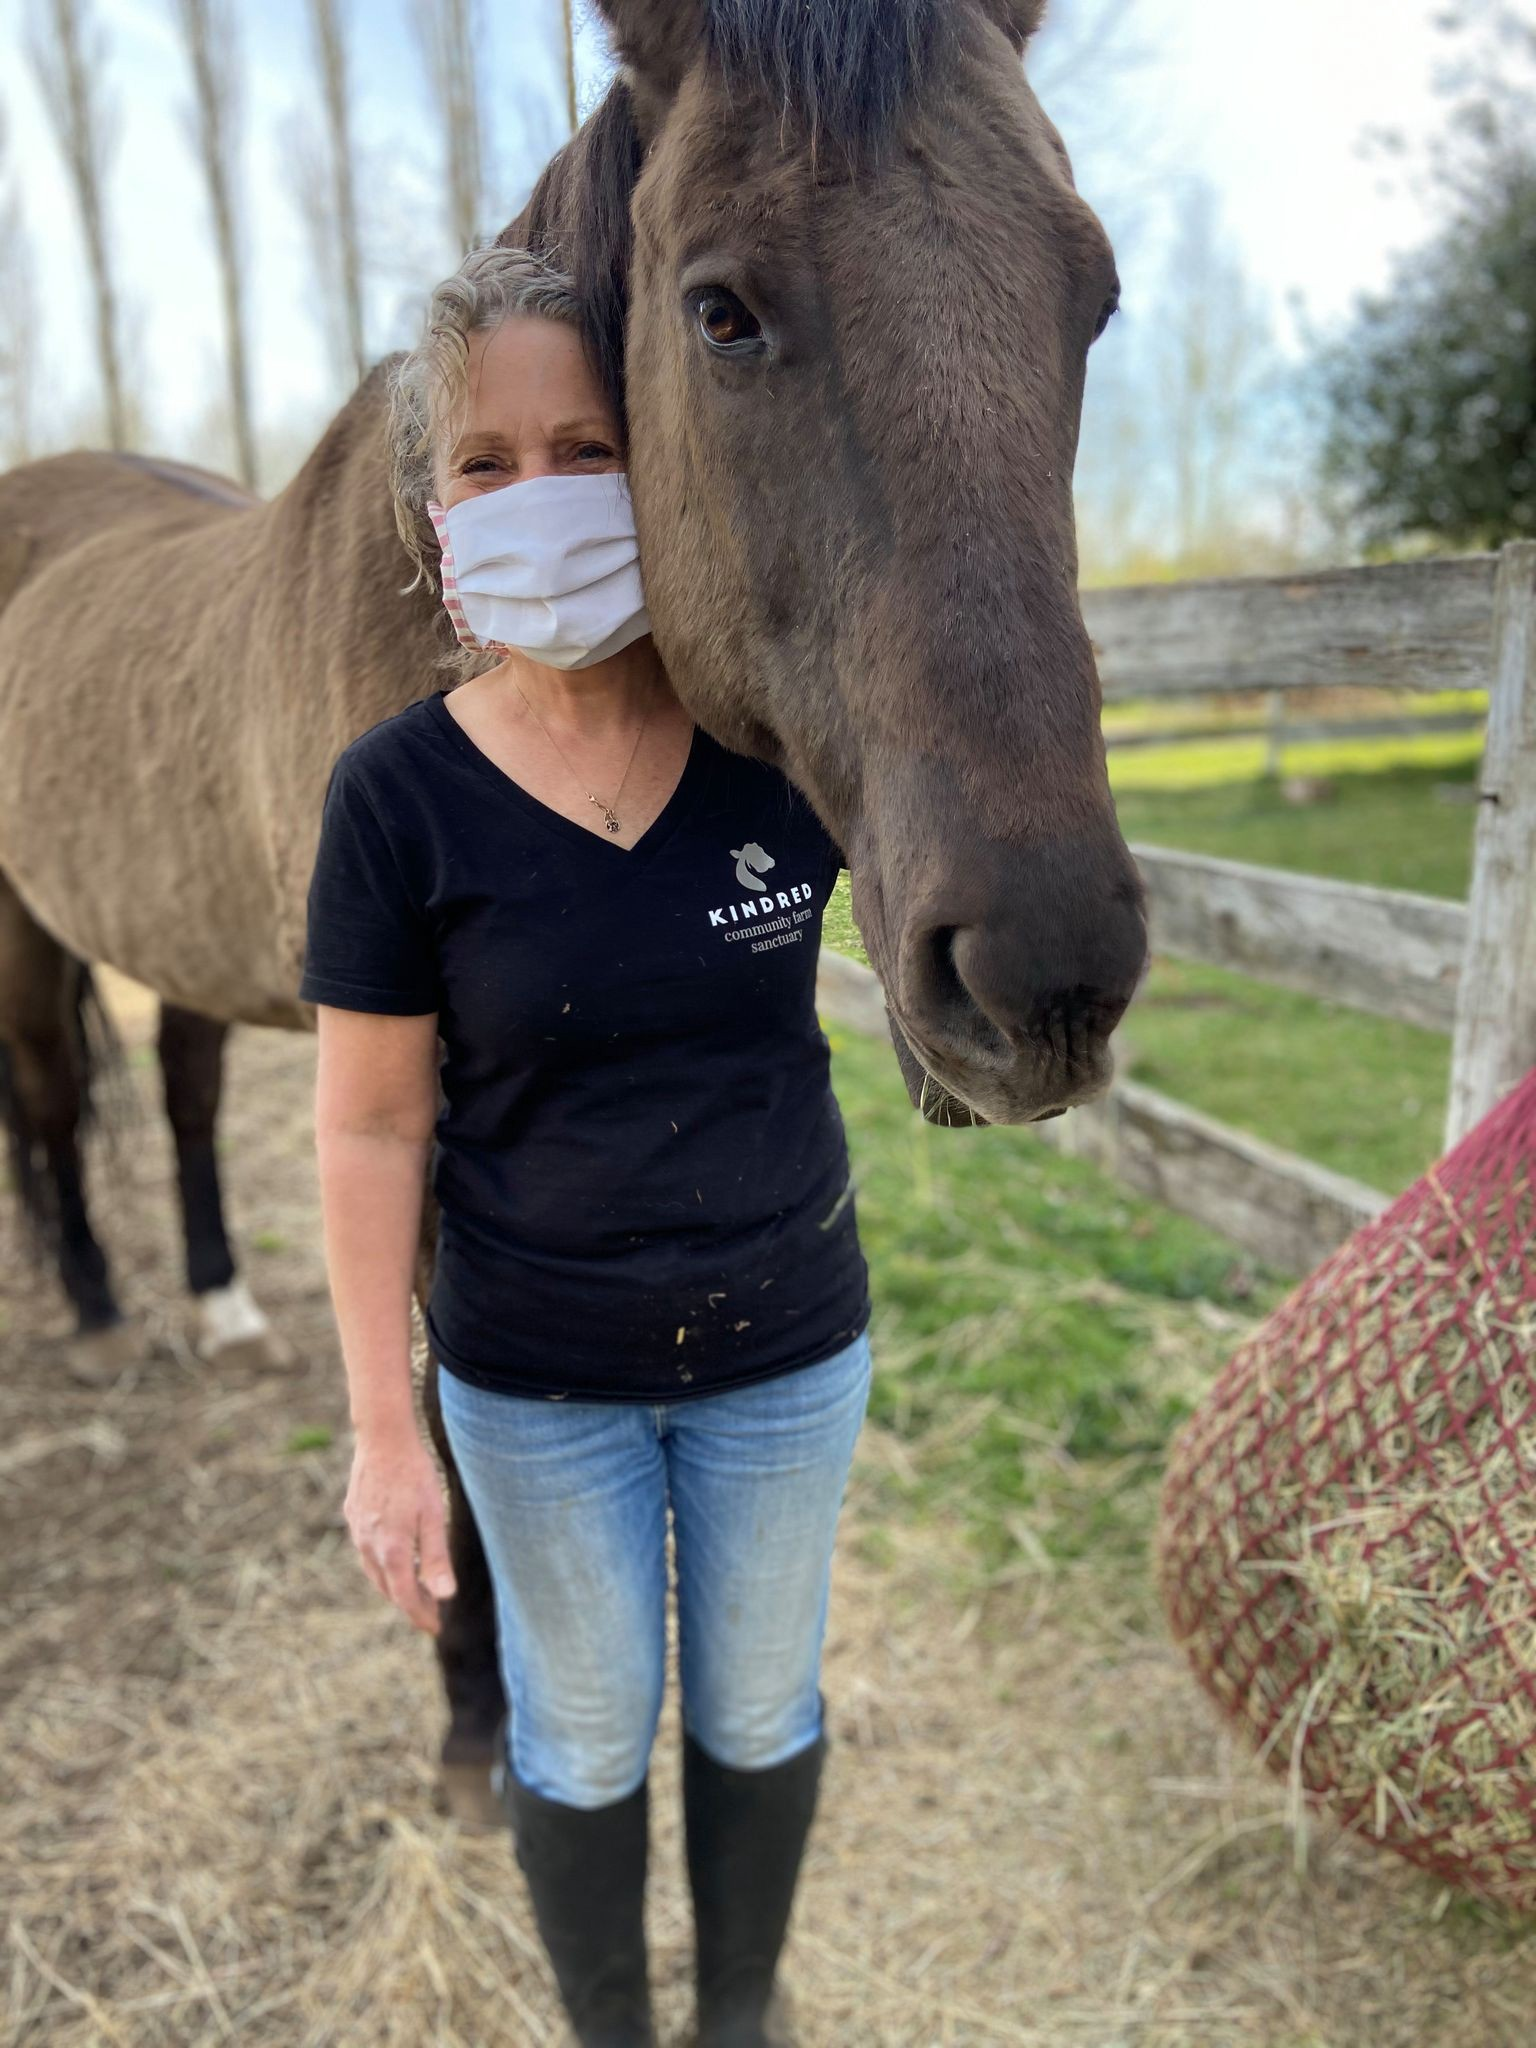 Keryn Denroche, a woman with short gray hair and a gray mask, poses with a soft looking brown horse on her farm sanctuary